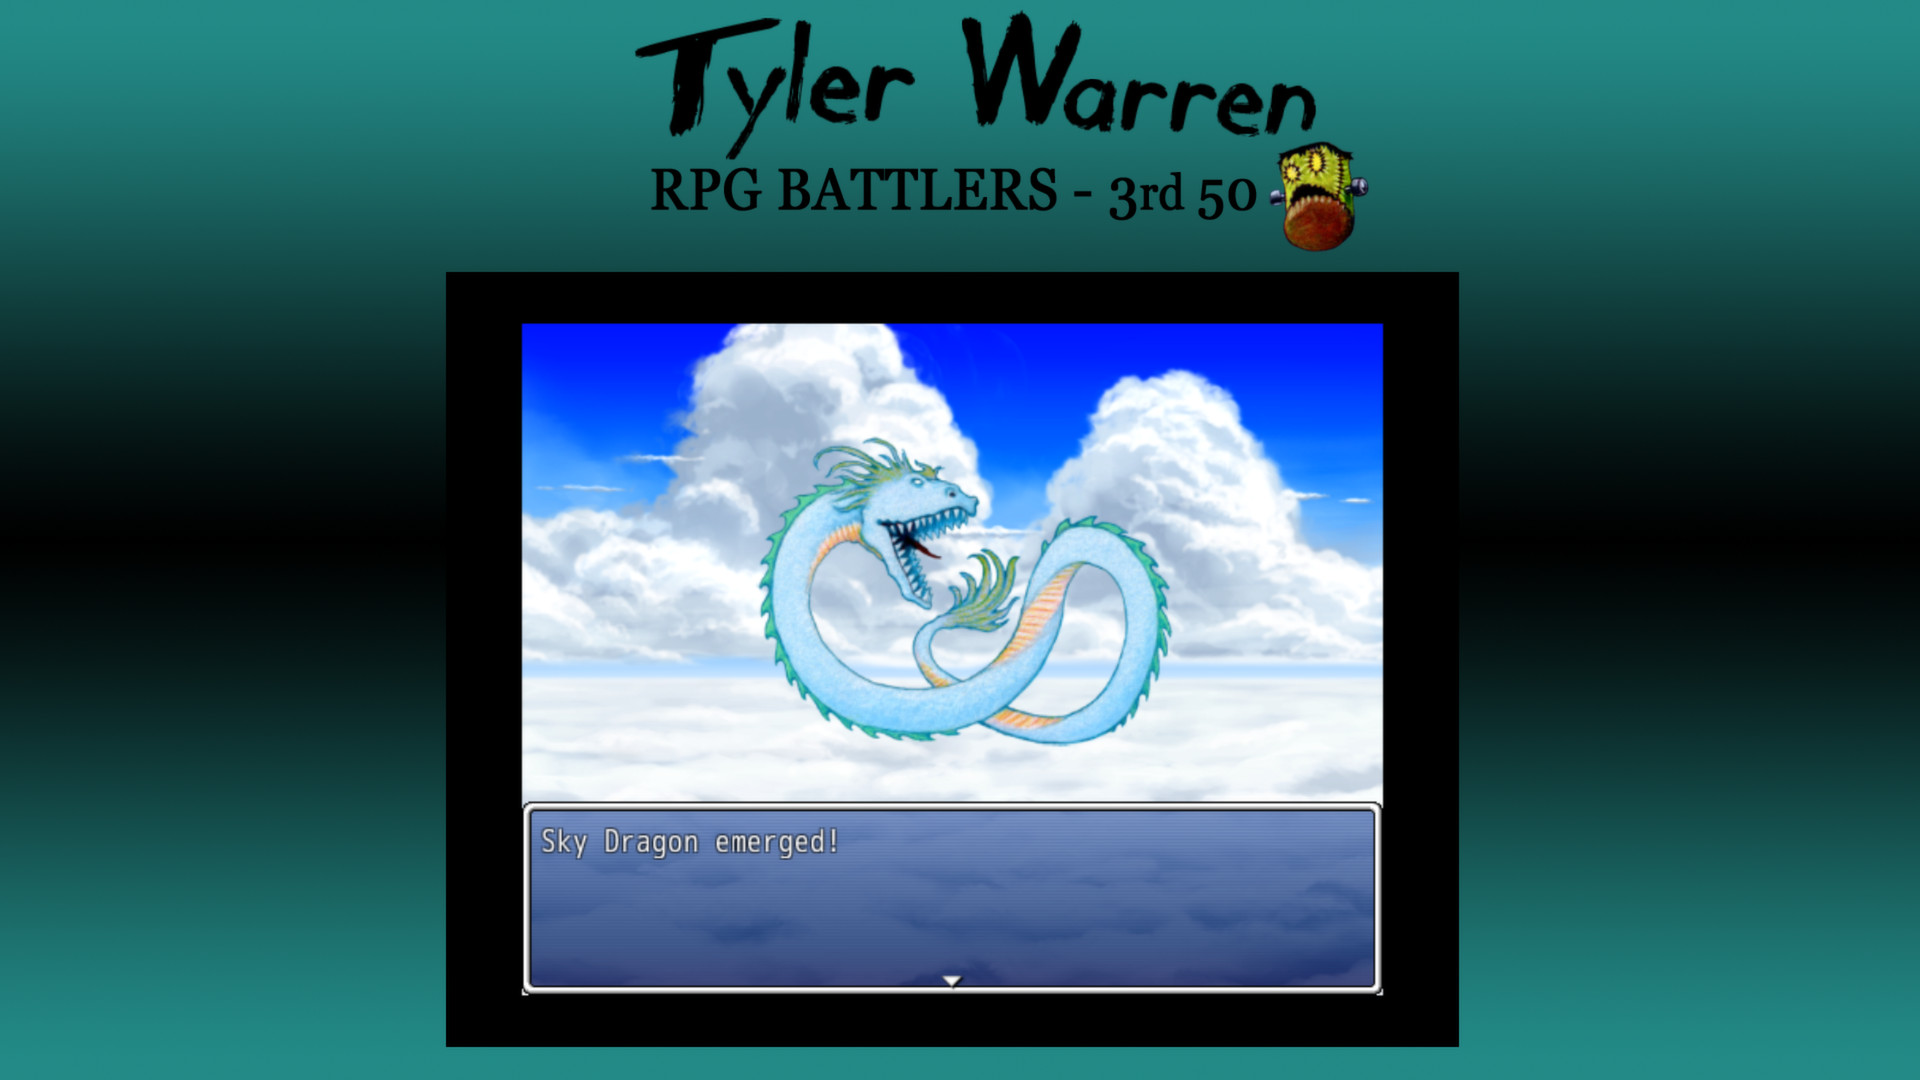 RPG Maker VX Ace - Tyler Warren RPG Battlers - 3rd 50 screenshot